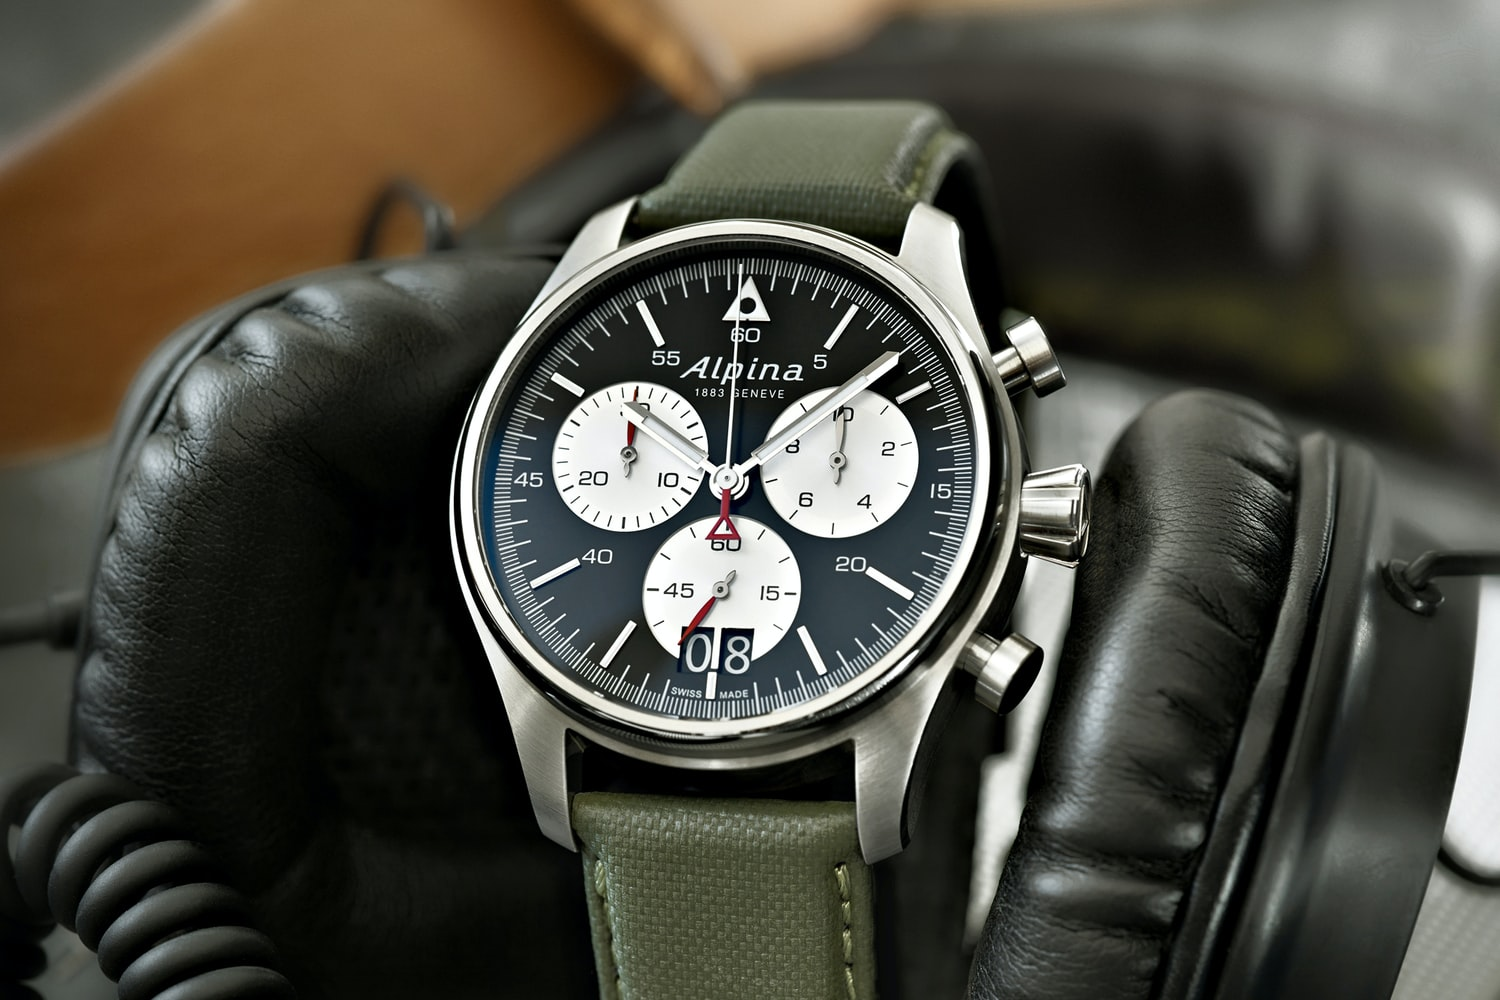 Introducing The Alpina Startimer Pilot Chronograph Big Date, With A New Dial And Timing To 1/10th Of A Second